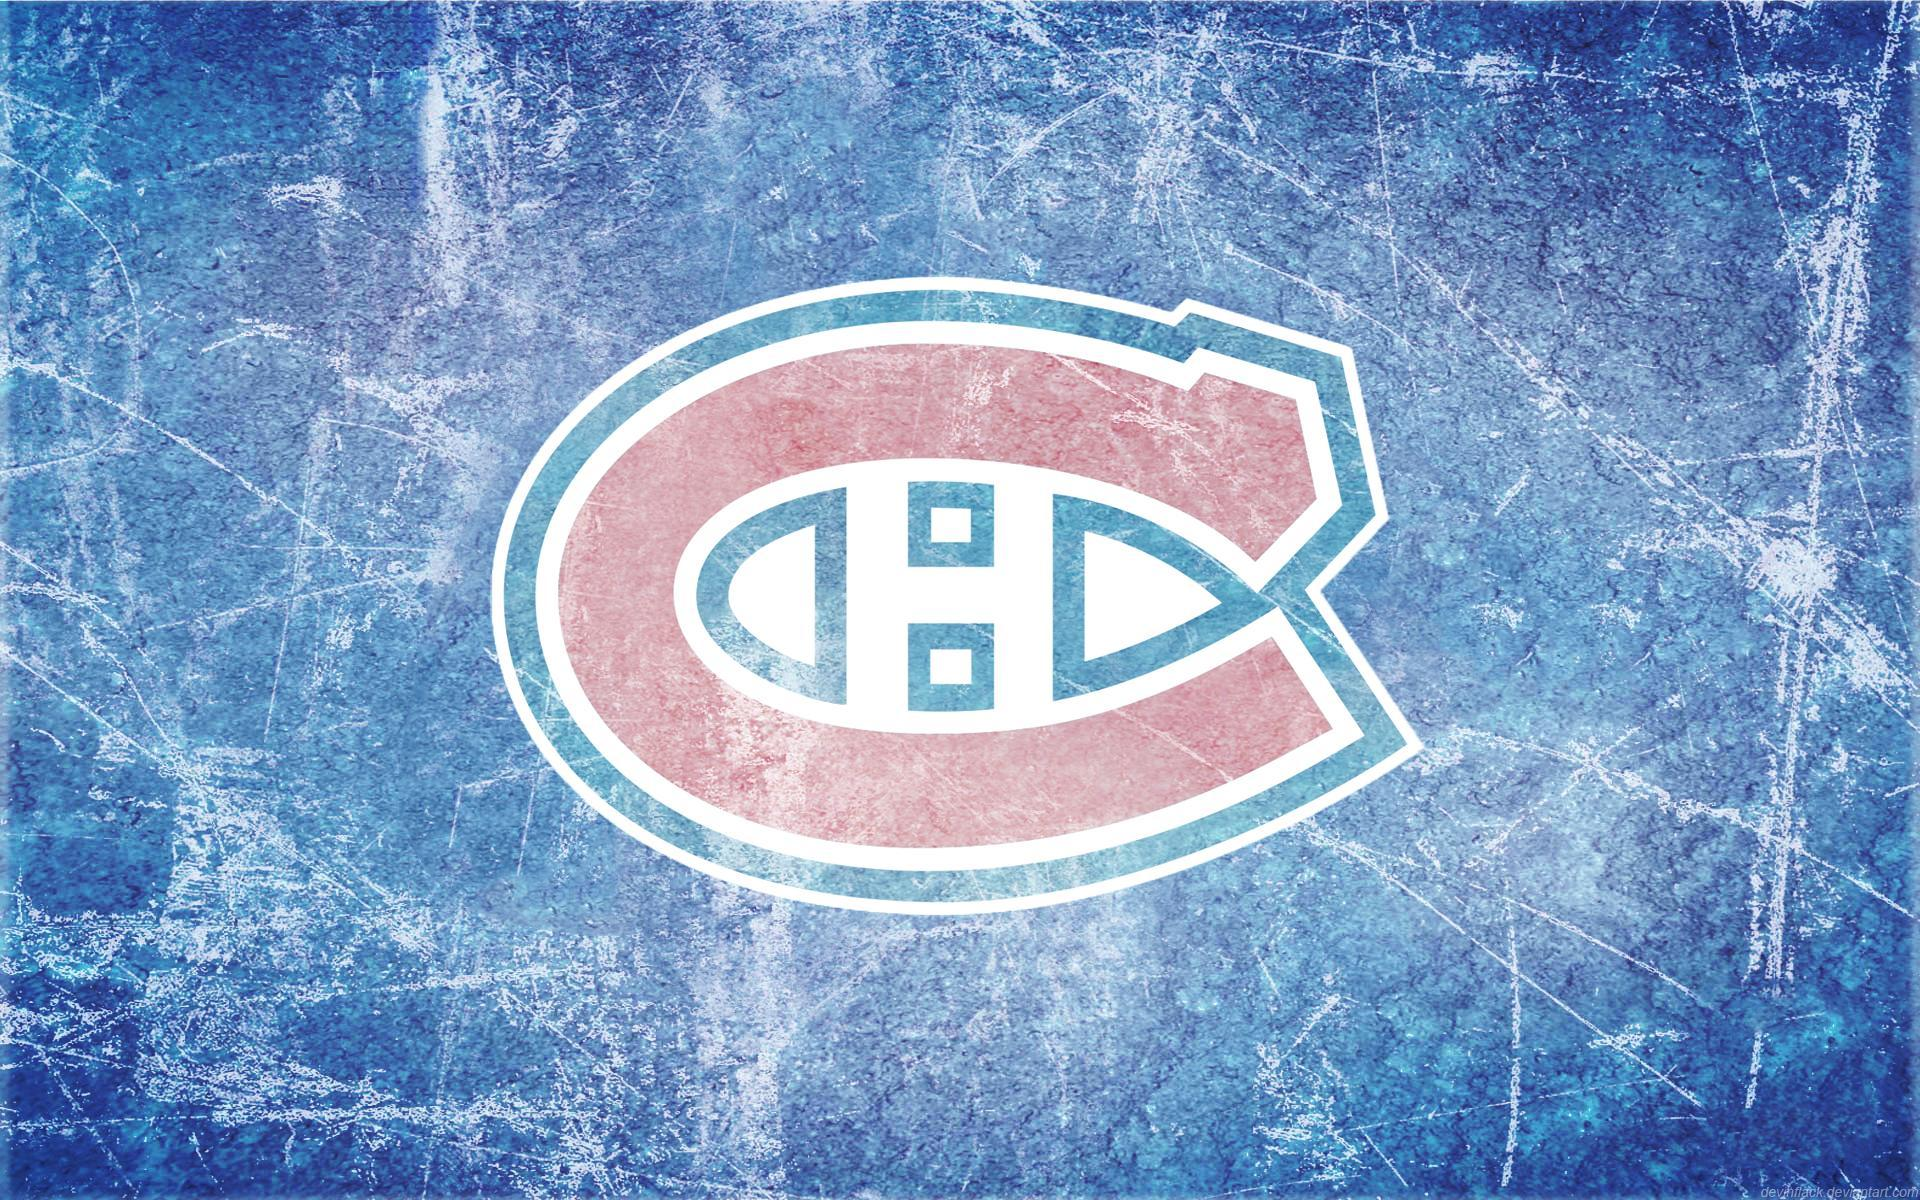 Montreal Canadiens Wallpapers 1920x1200